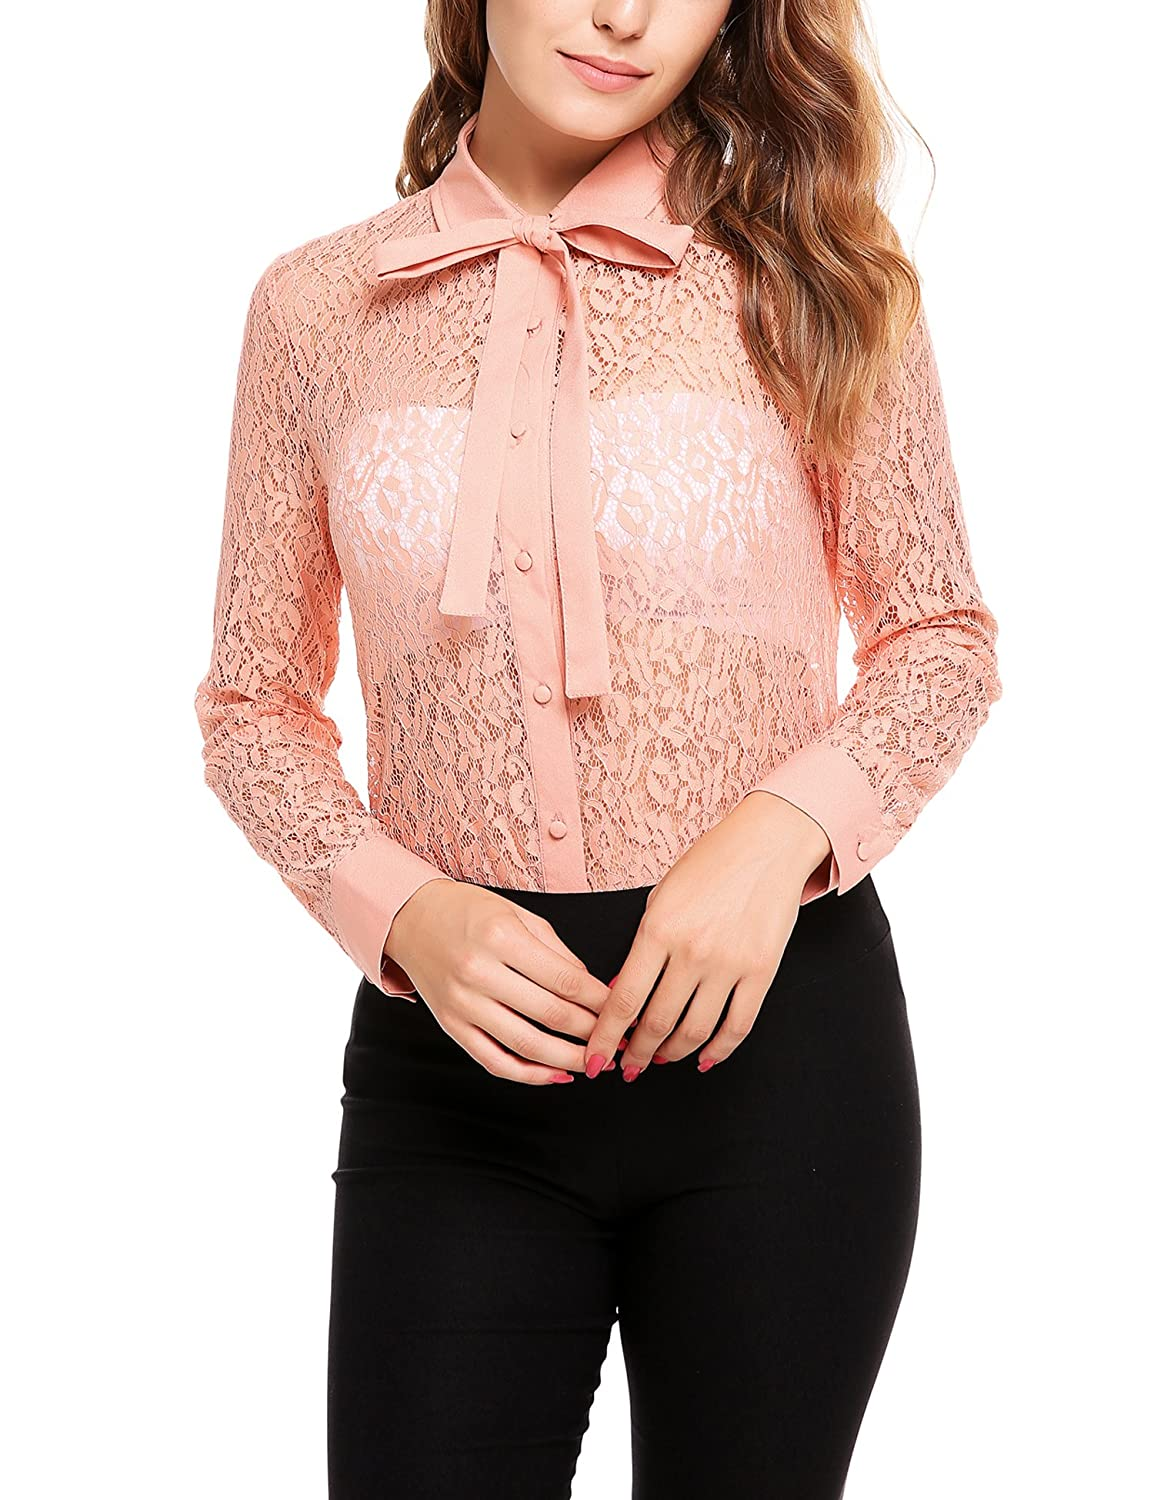 7a076f5f411a04 Zeagoo Women's Long Sleeve Button Down Lace Shirt Bow Knot Collar Blouse  See Through Tops at Amazon Women's Clothing store: